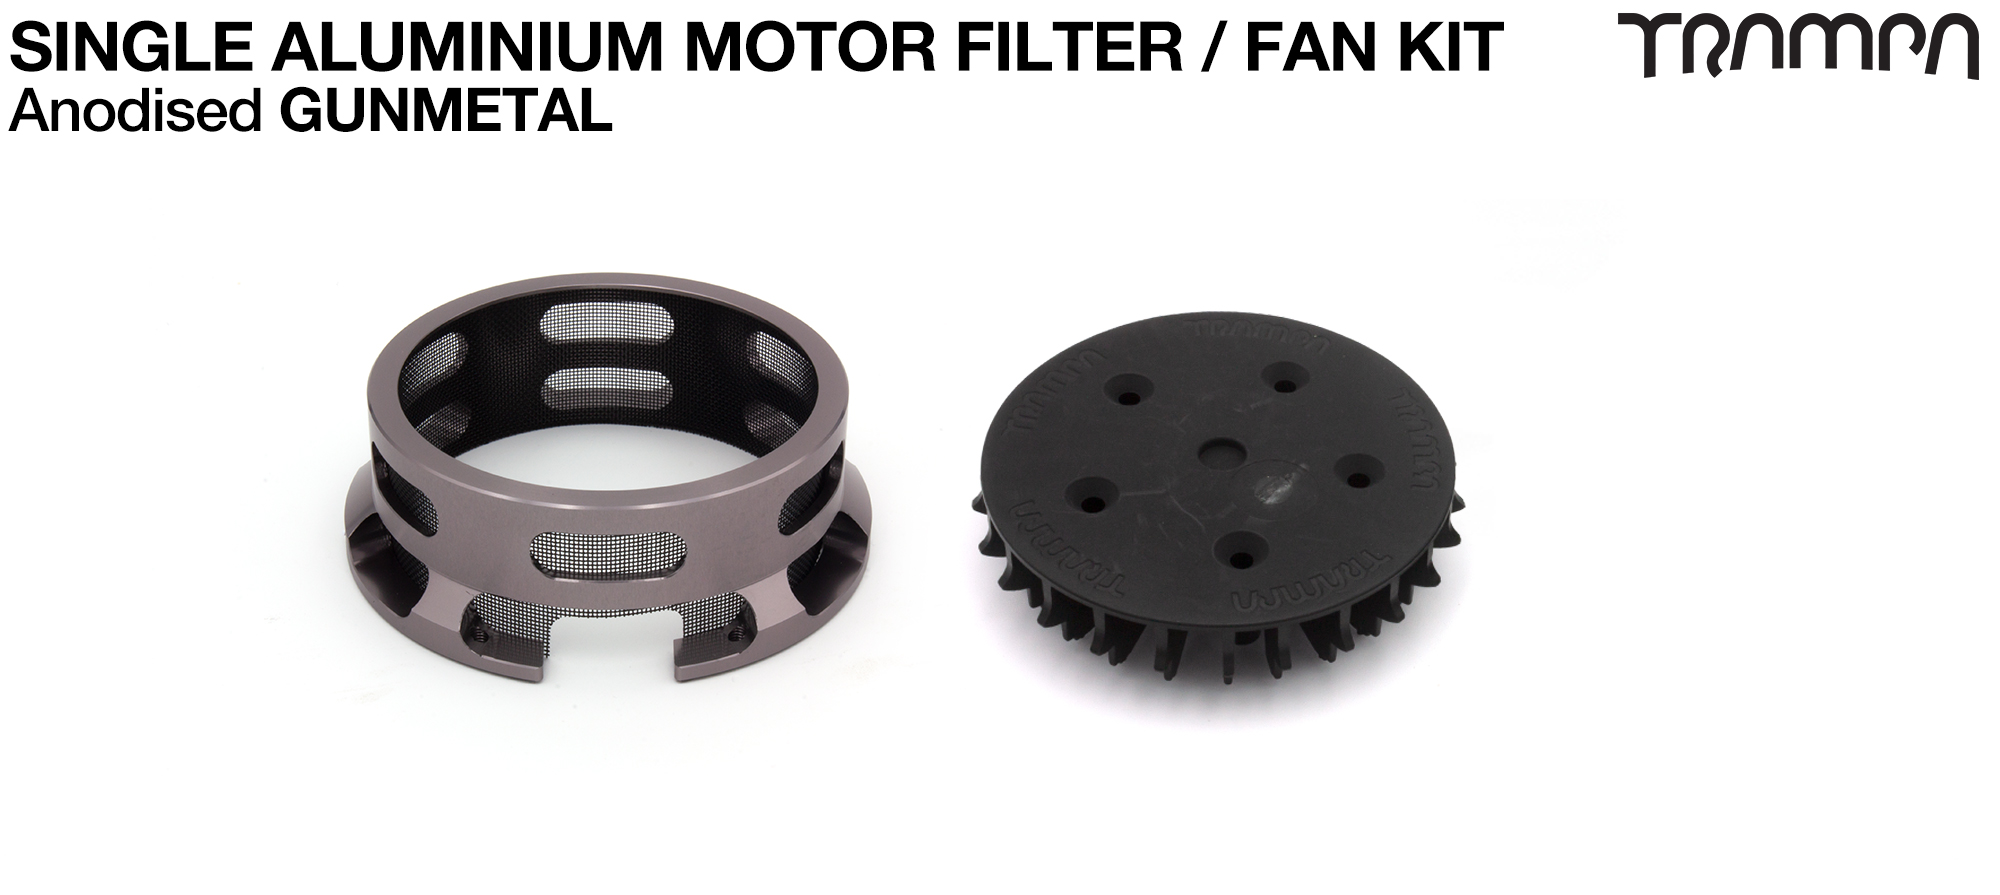 14FiFties BLACK Motor protection Housing with GUNMETAL particle Filter & Fan - SINGLE